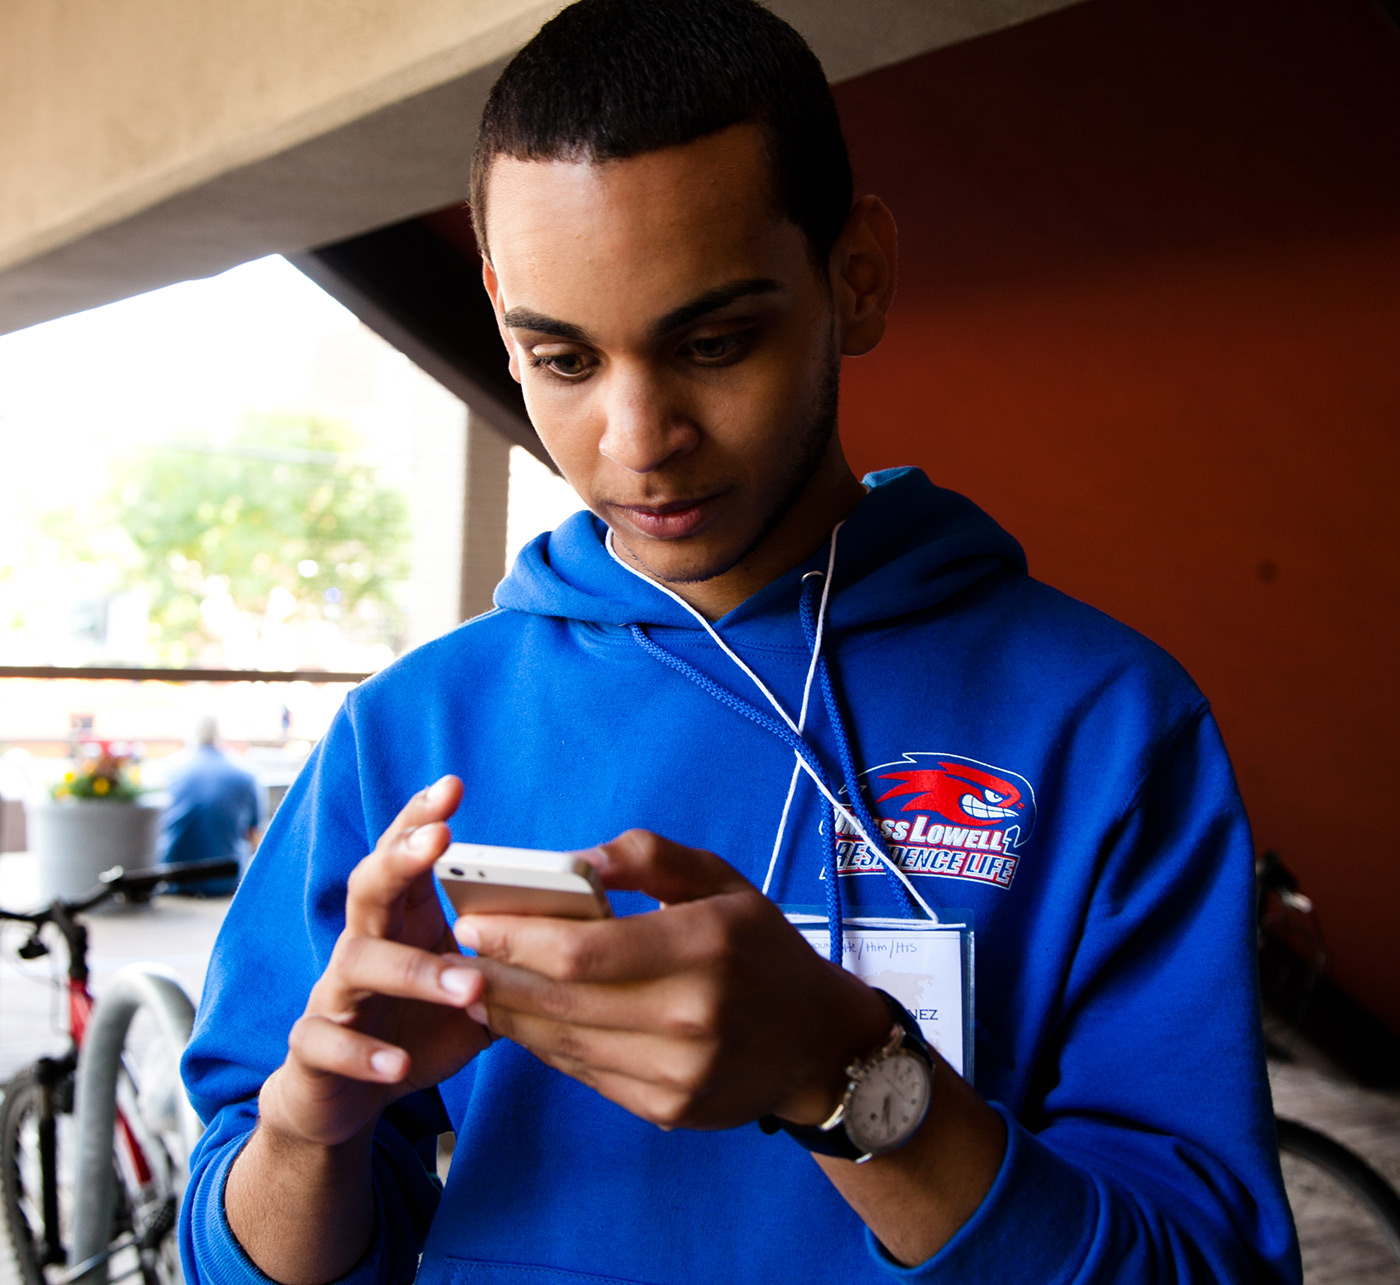 A Residence Life staffer checks his smart phone during East Campus move-in.